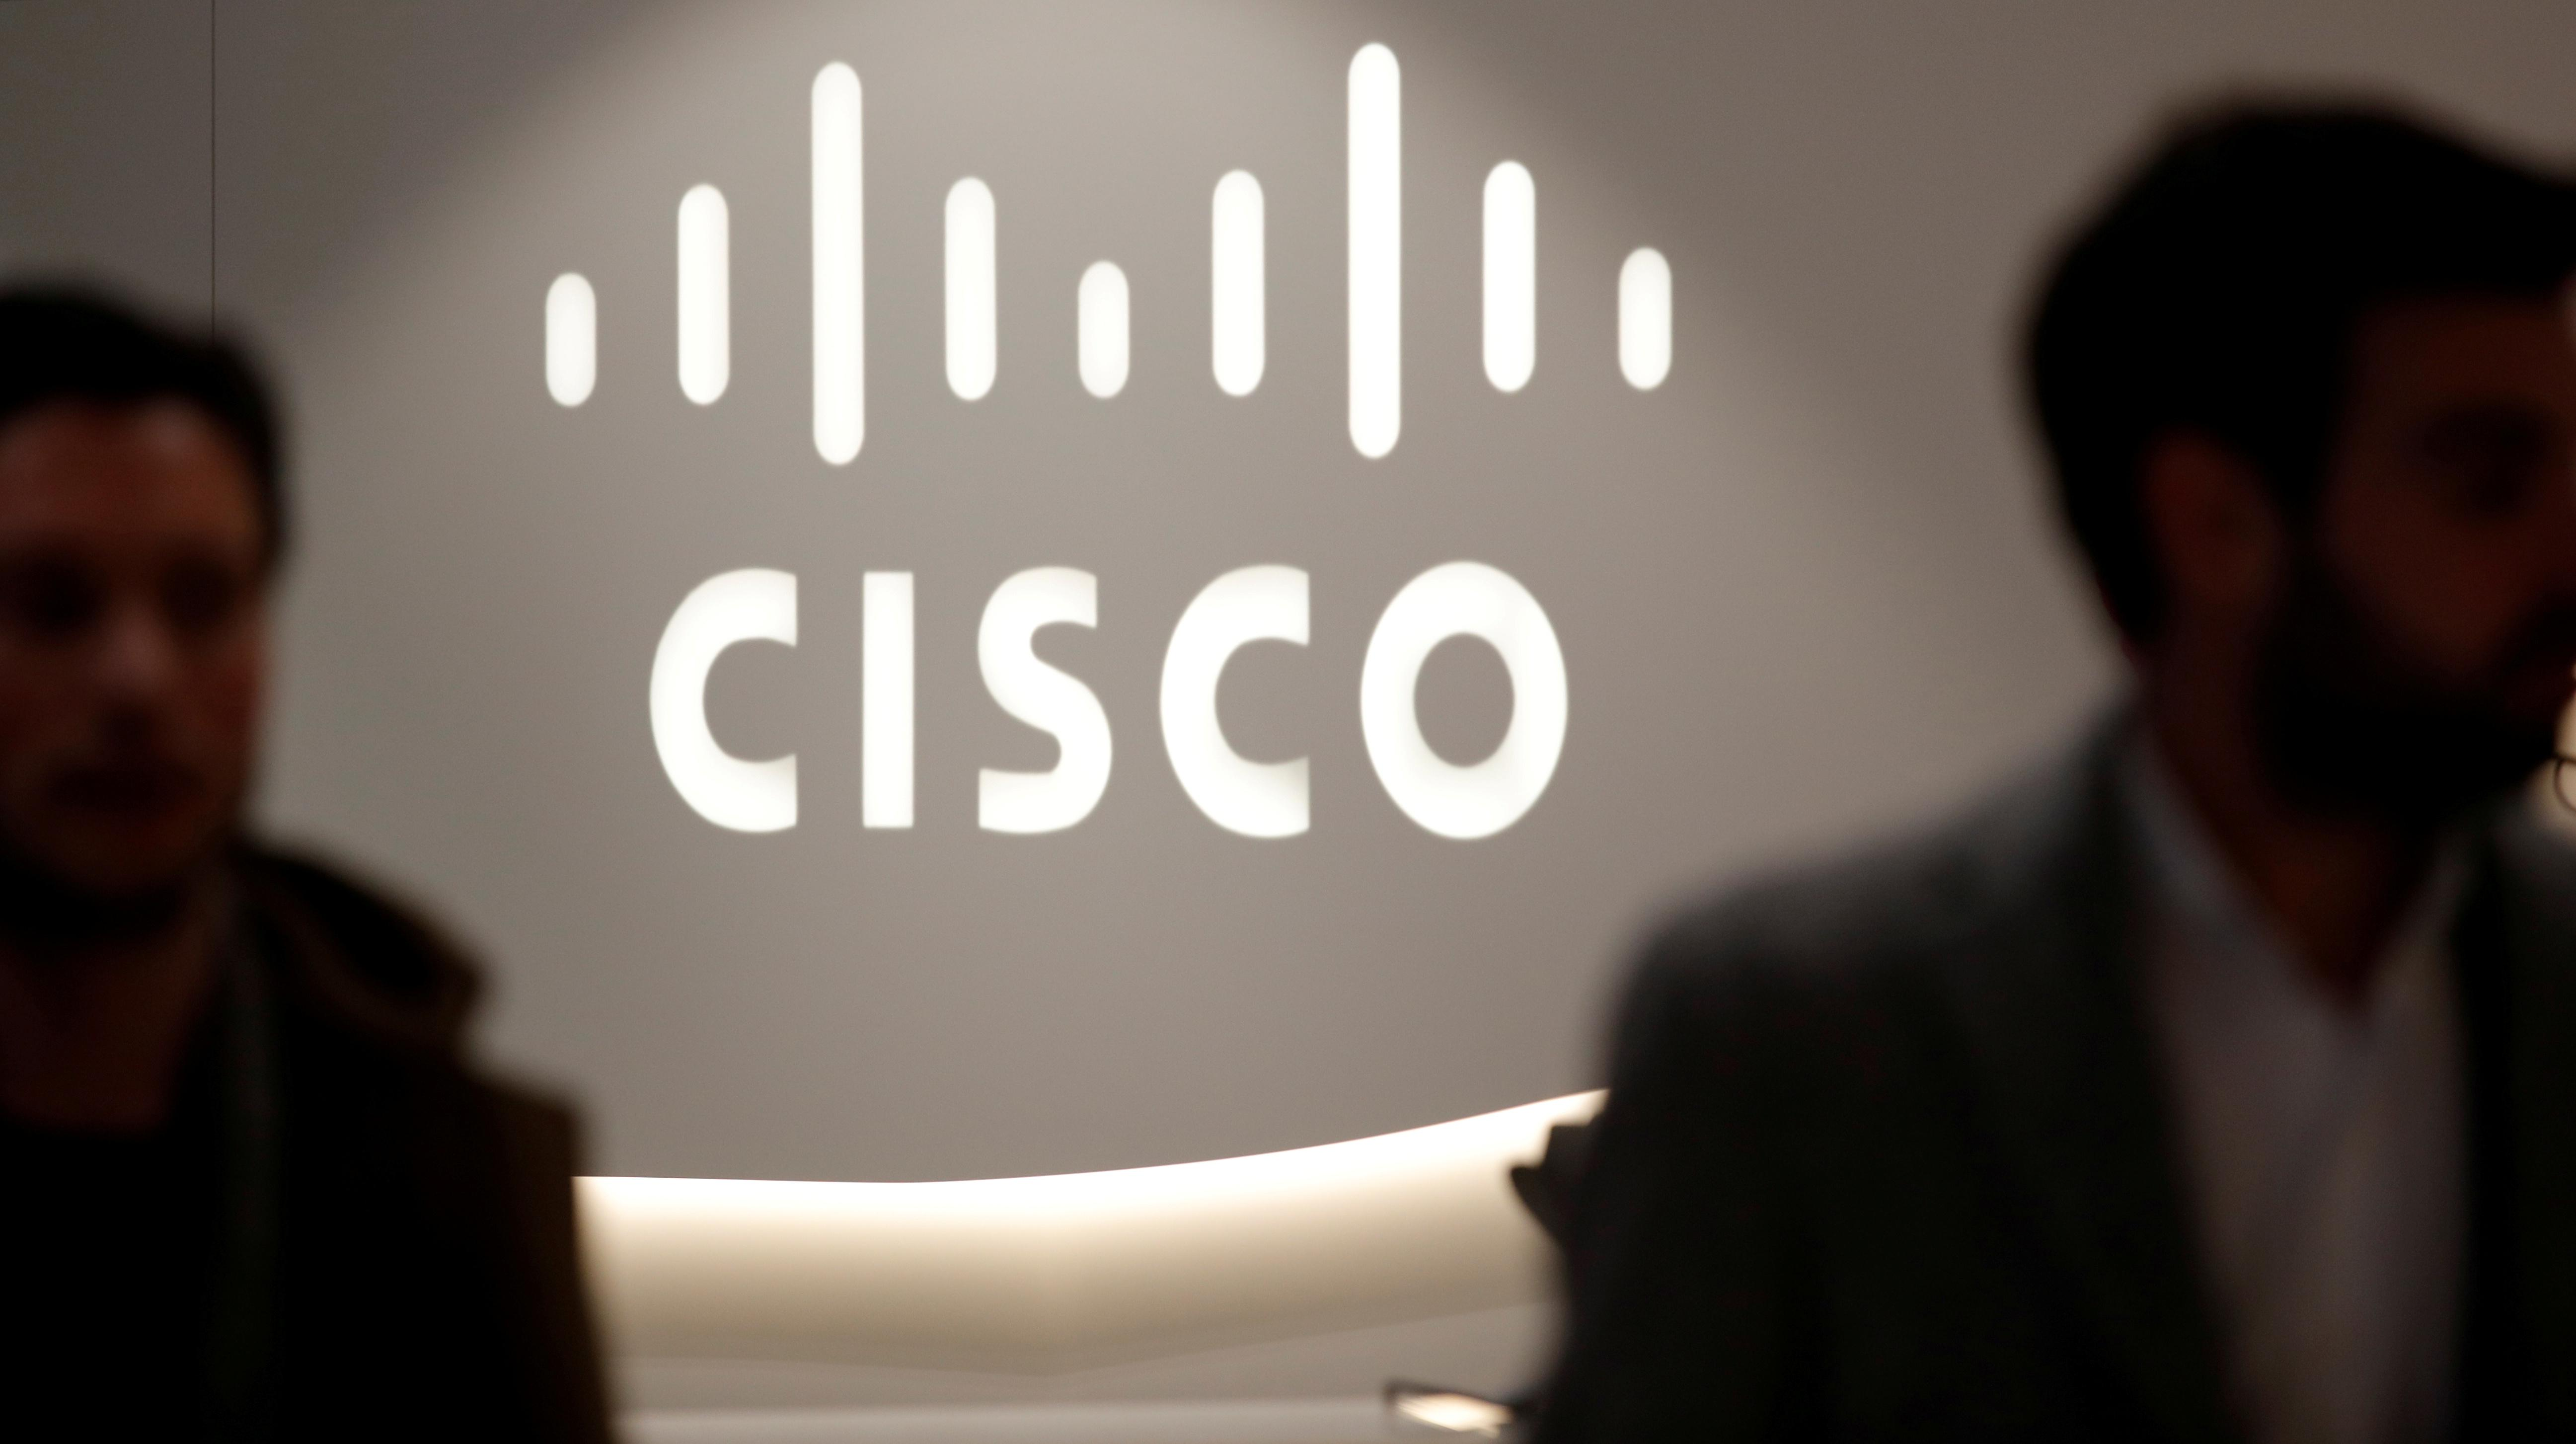 Newer businesses drive Cisco's earnings beat; shares rise